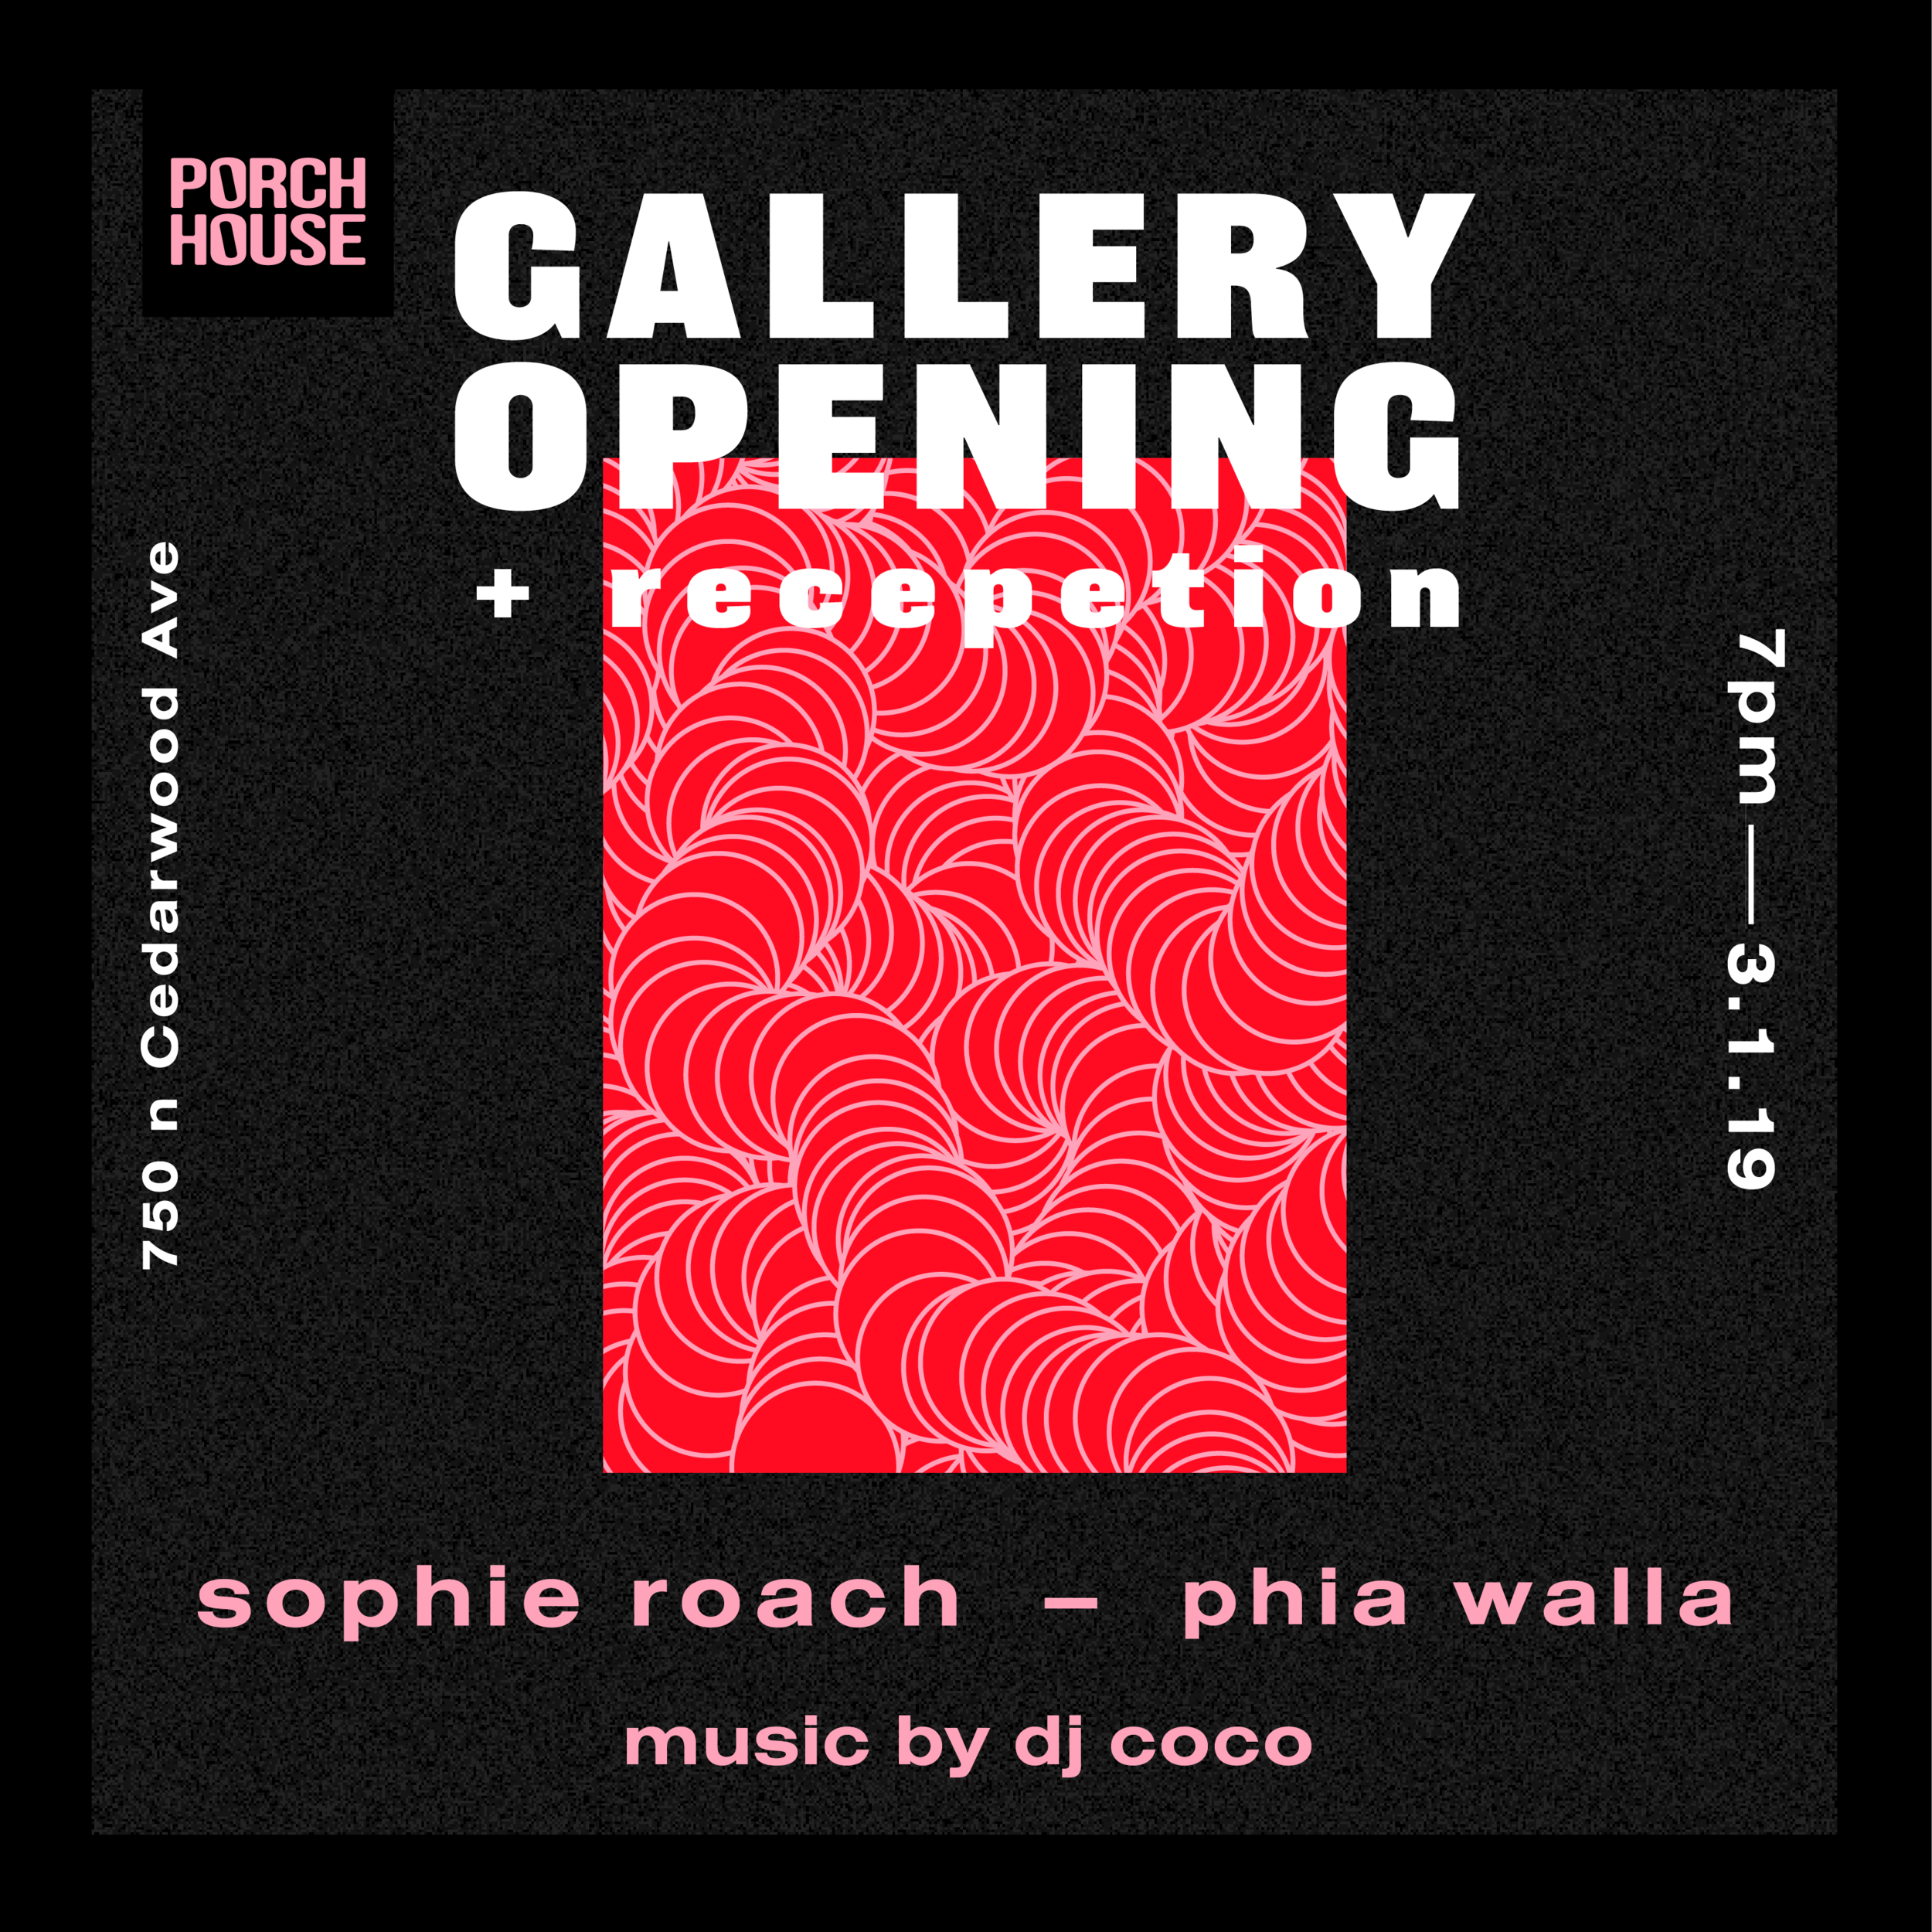 gallery opening poster-01.png